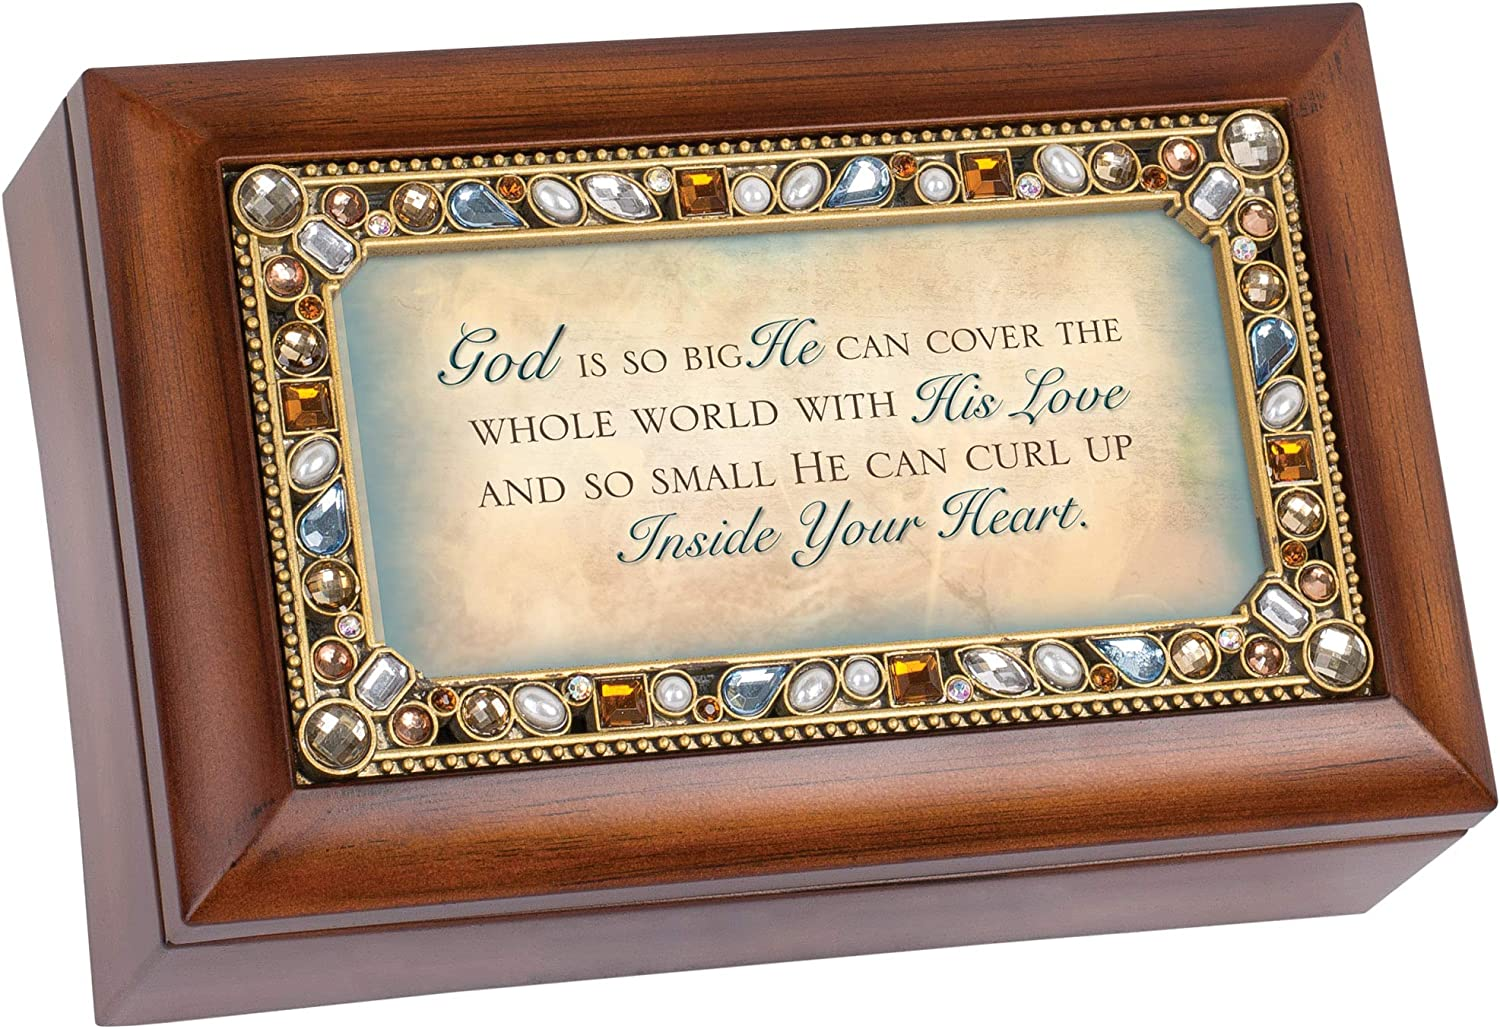 Cottage Garden God is So Big He Can Jeweled Woodgrain Jewelry Music Box - Plays Tune Amazing Grace